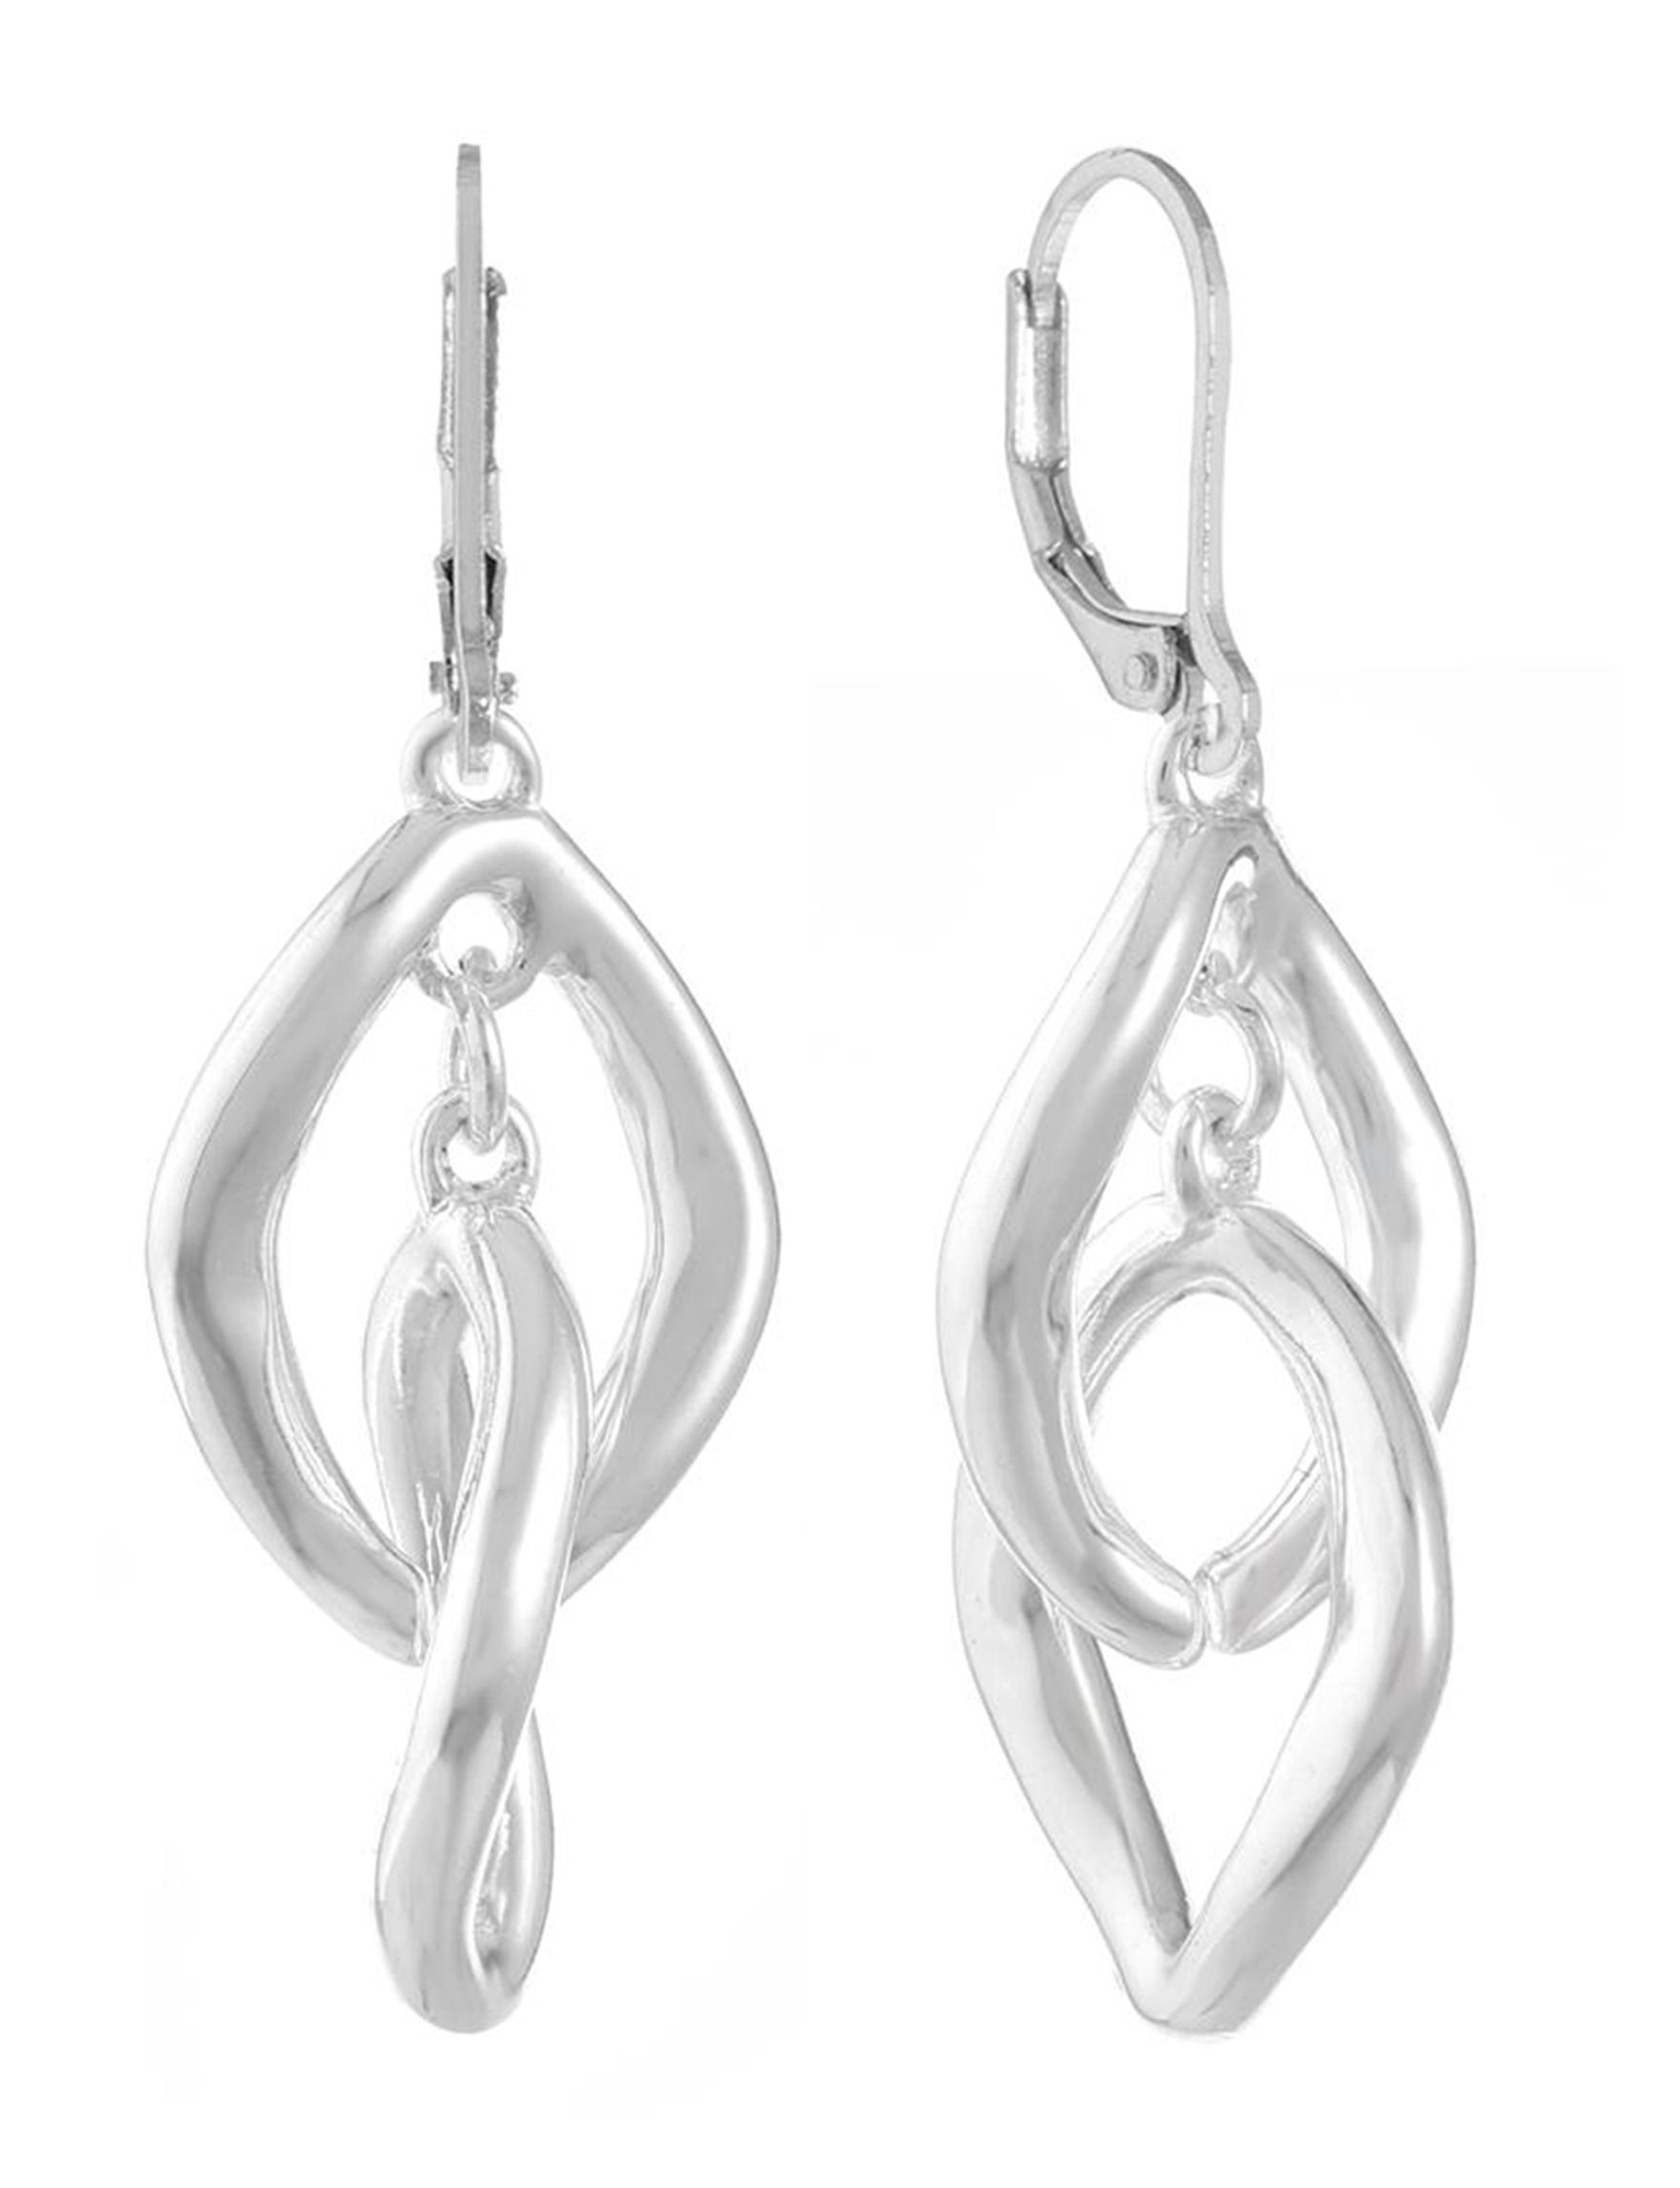 Gloria Vanderbilt Silver Drops Earrings Fashion Jewelry